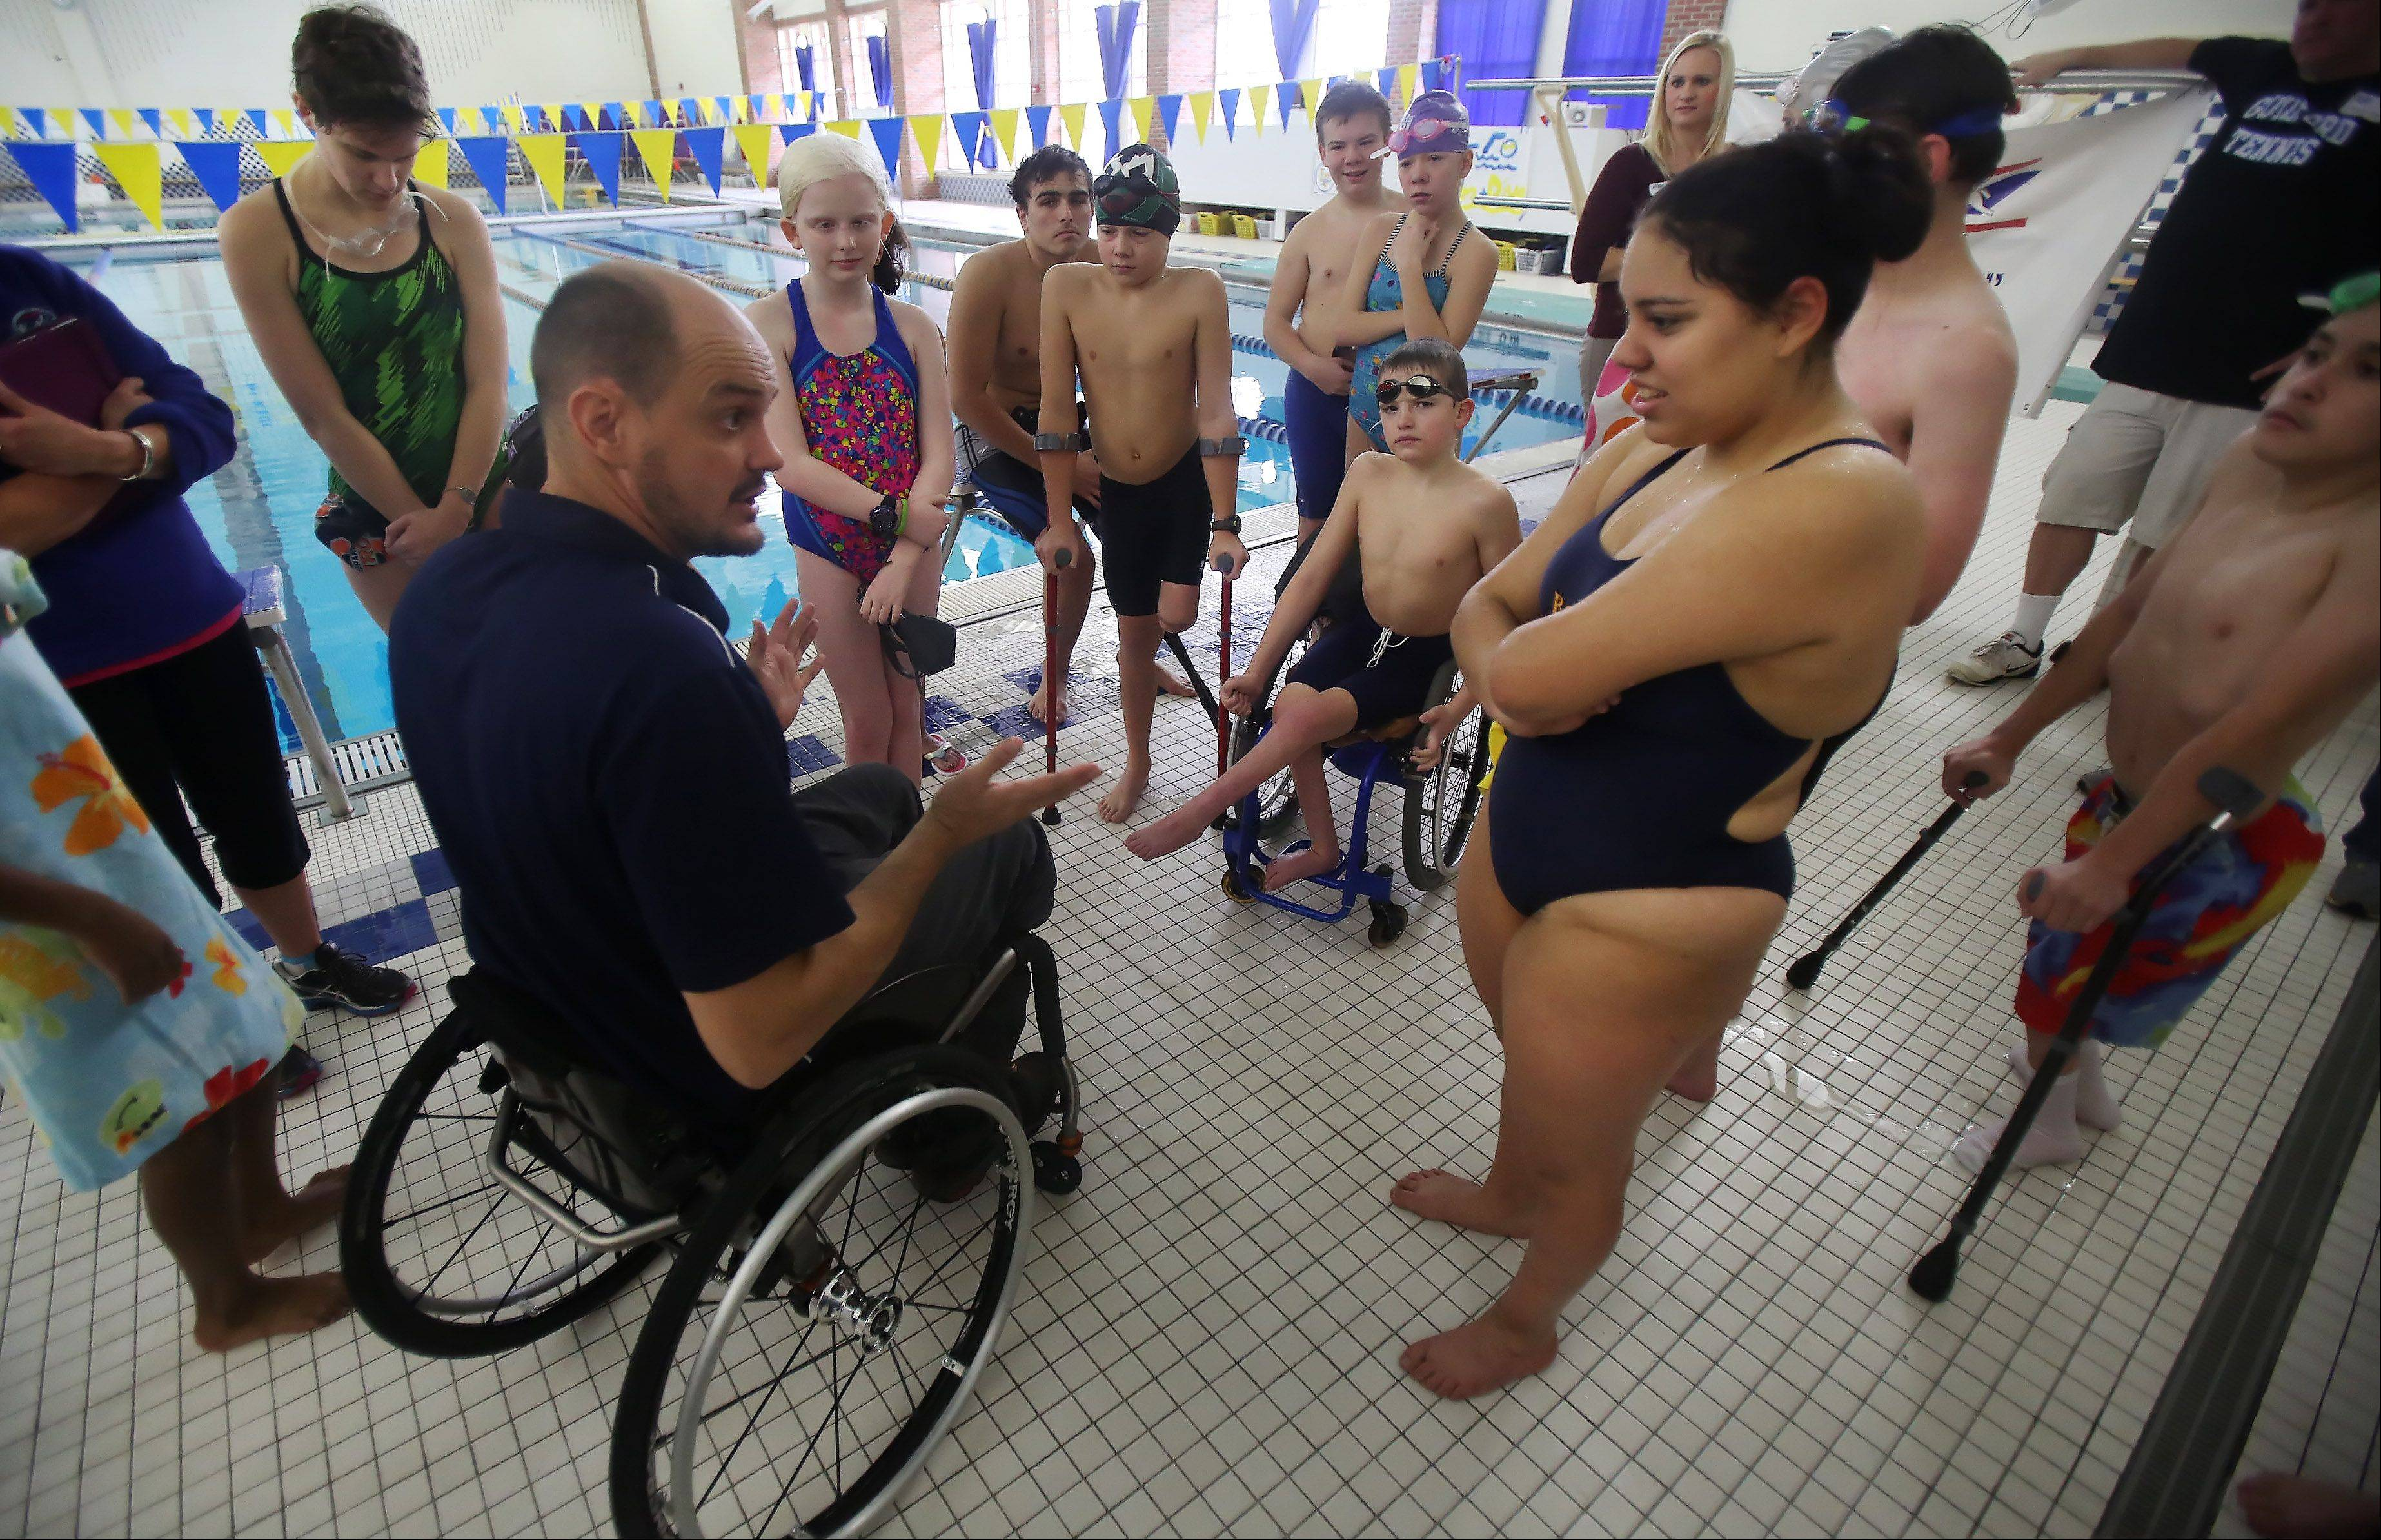 U.S. Paralympics swim coach Dave Denniston talks to children participating in the Gateway to Gold talent identification event Sunday at Lake Forest High School. The event was hosted by the Great Lakes Adaptive Sports Association to recognize individuals who could represent the country at the Paralympic Games.